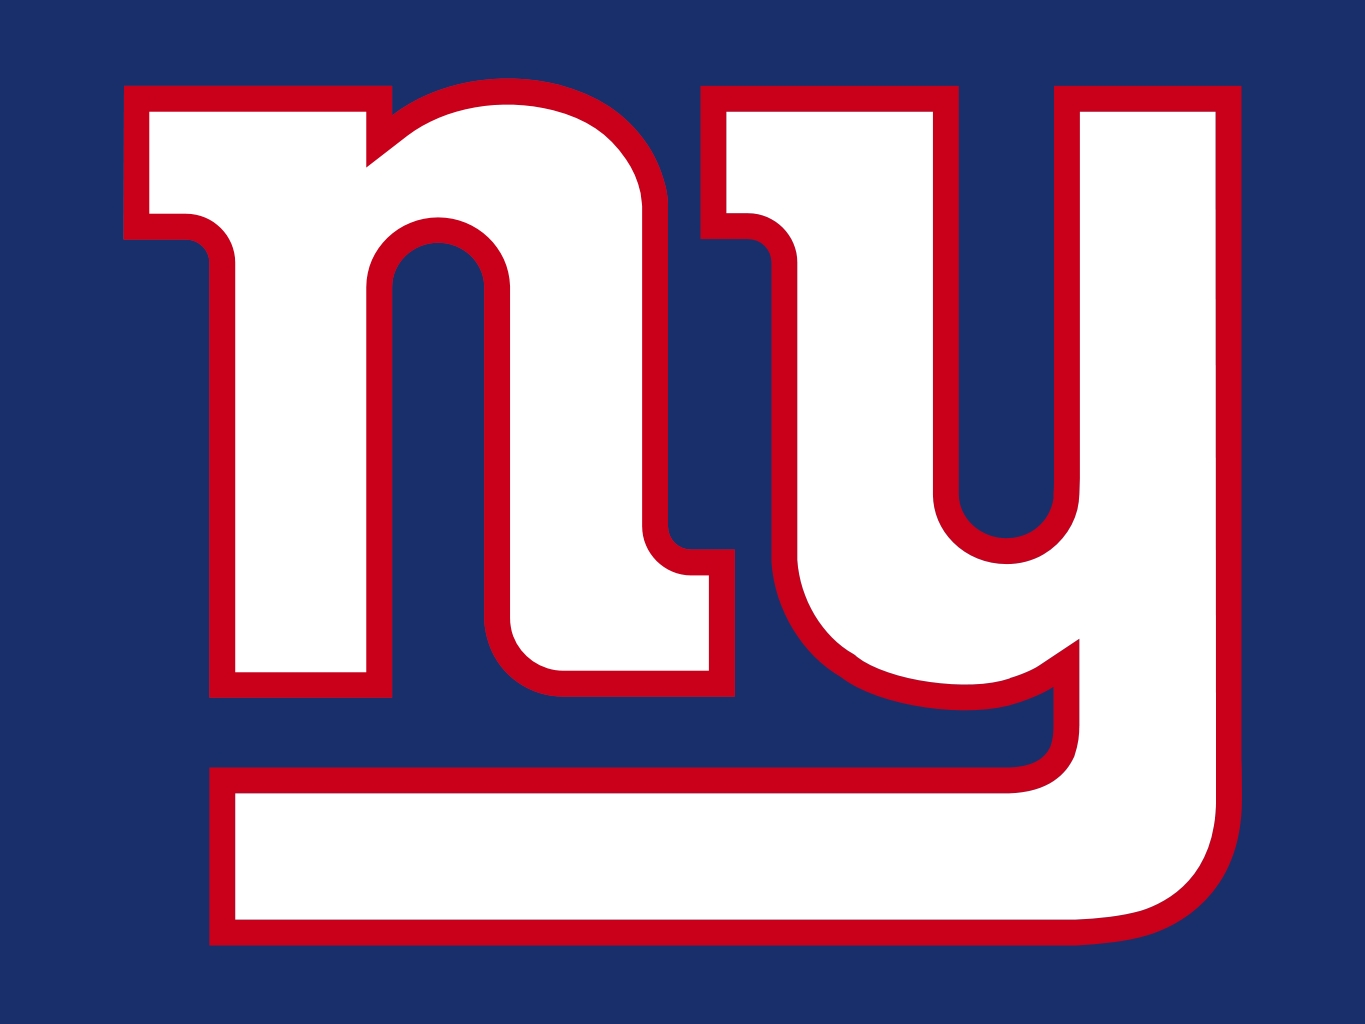 New York Giants Pro Sports Teams Wiki Fandom Powered